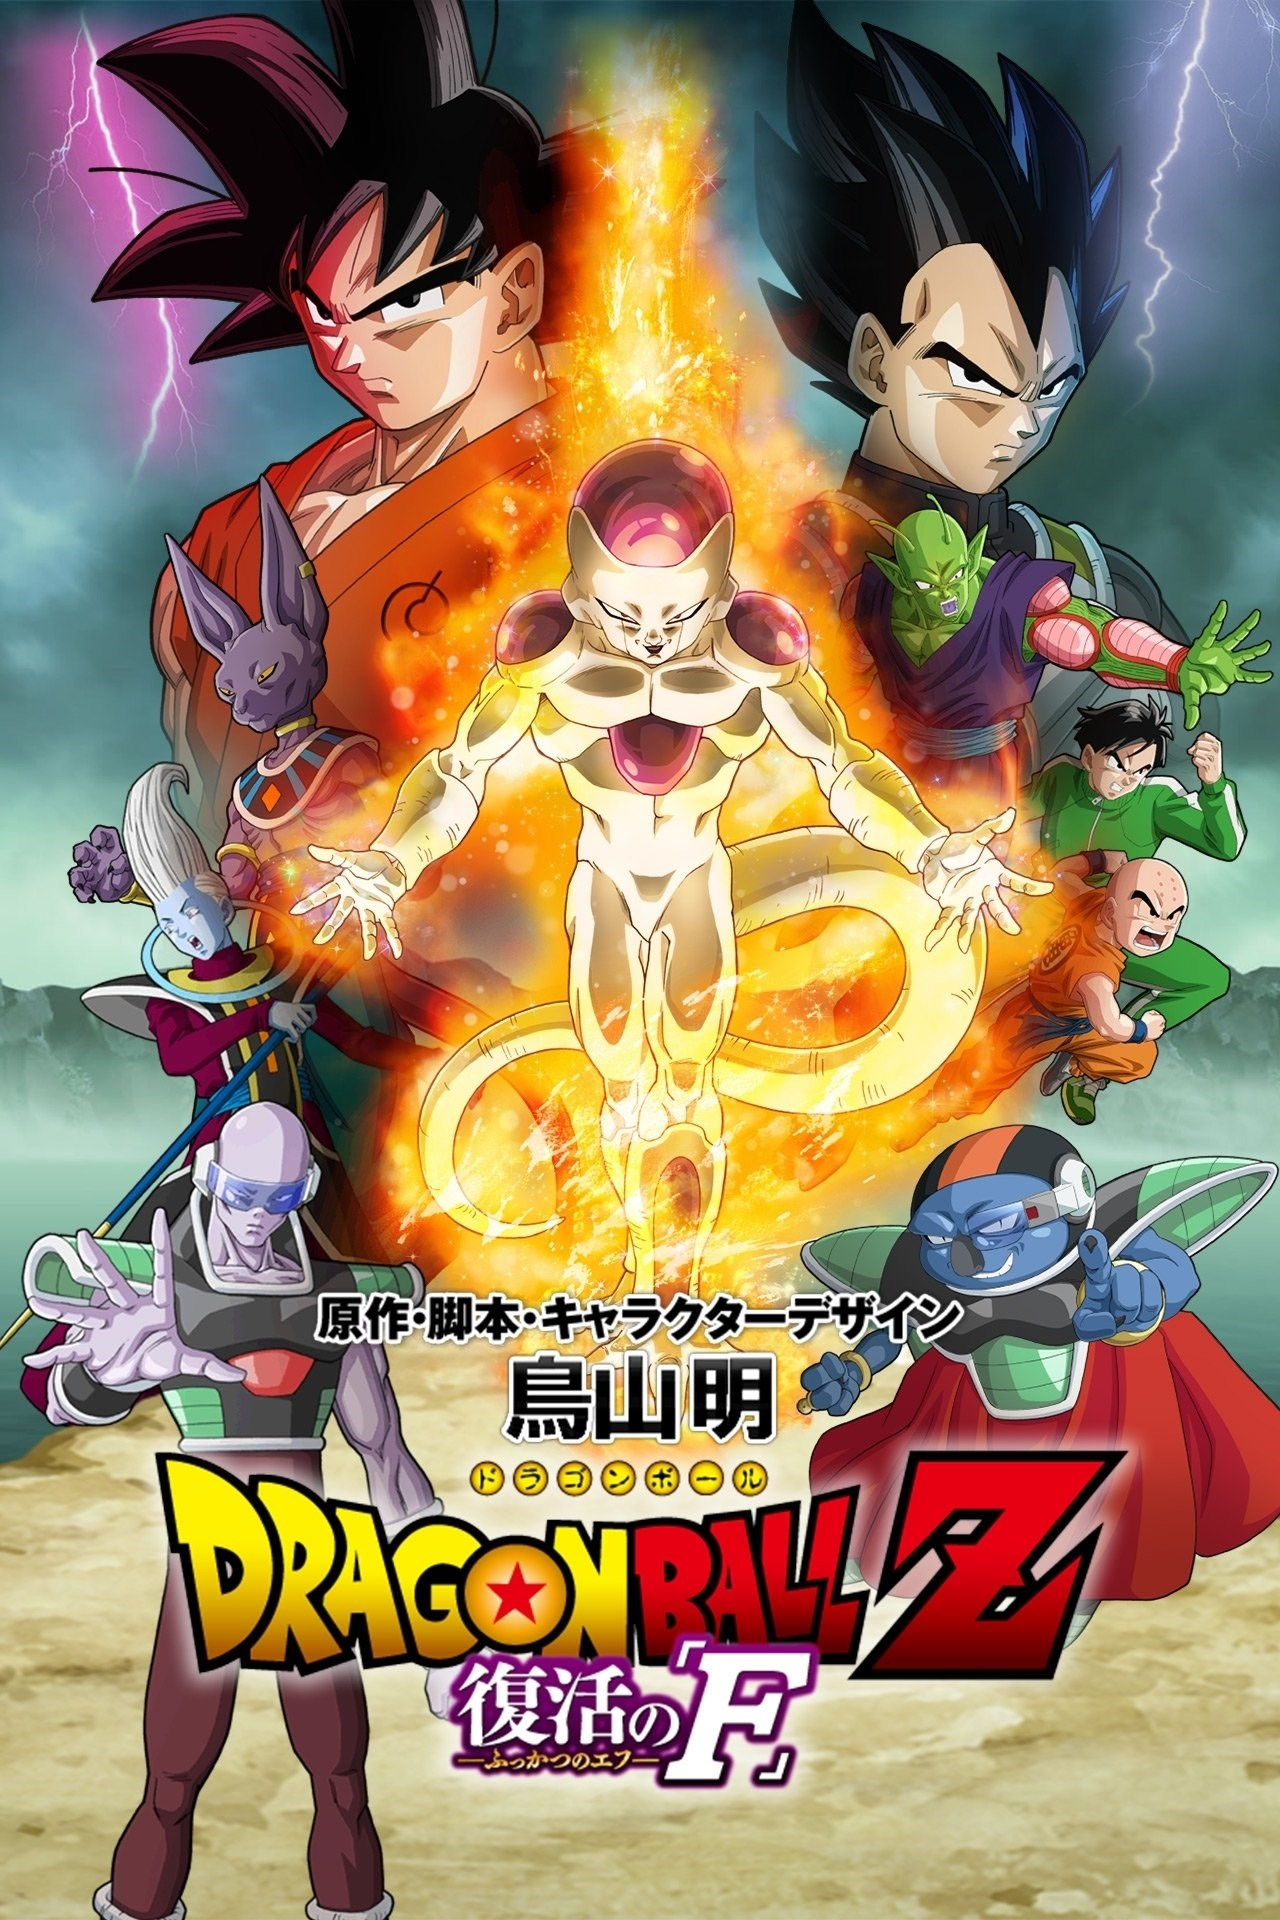 Dragon ball z resurrection of f imdb release info dragon ball z